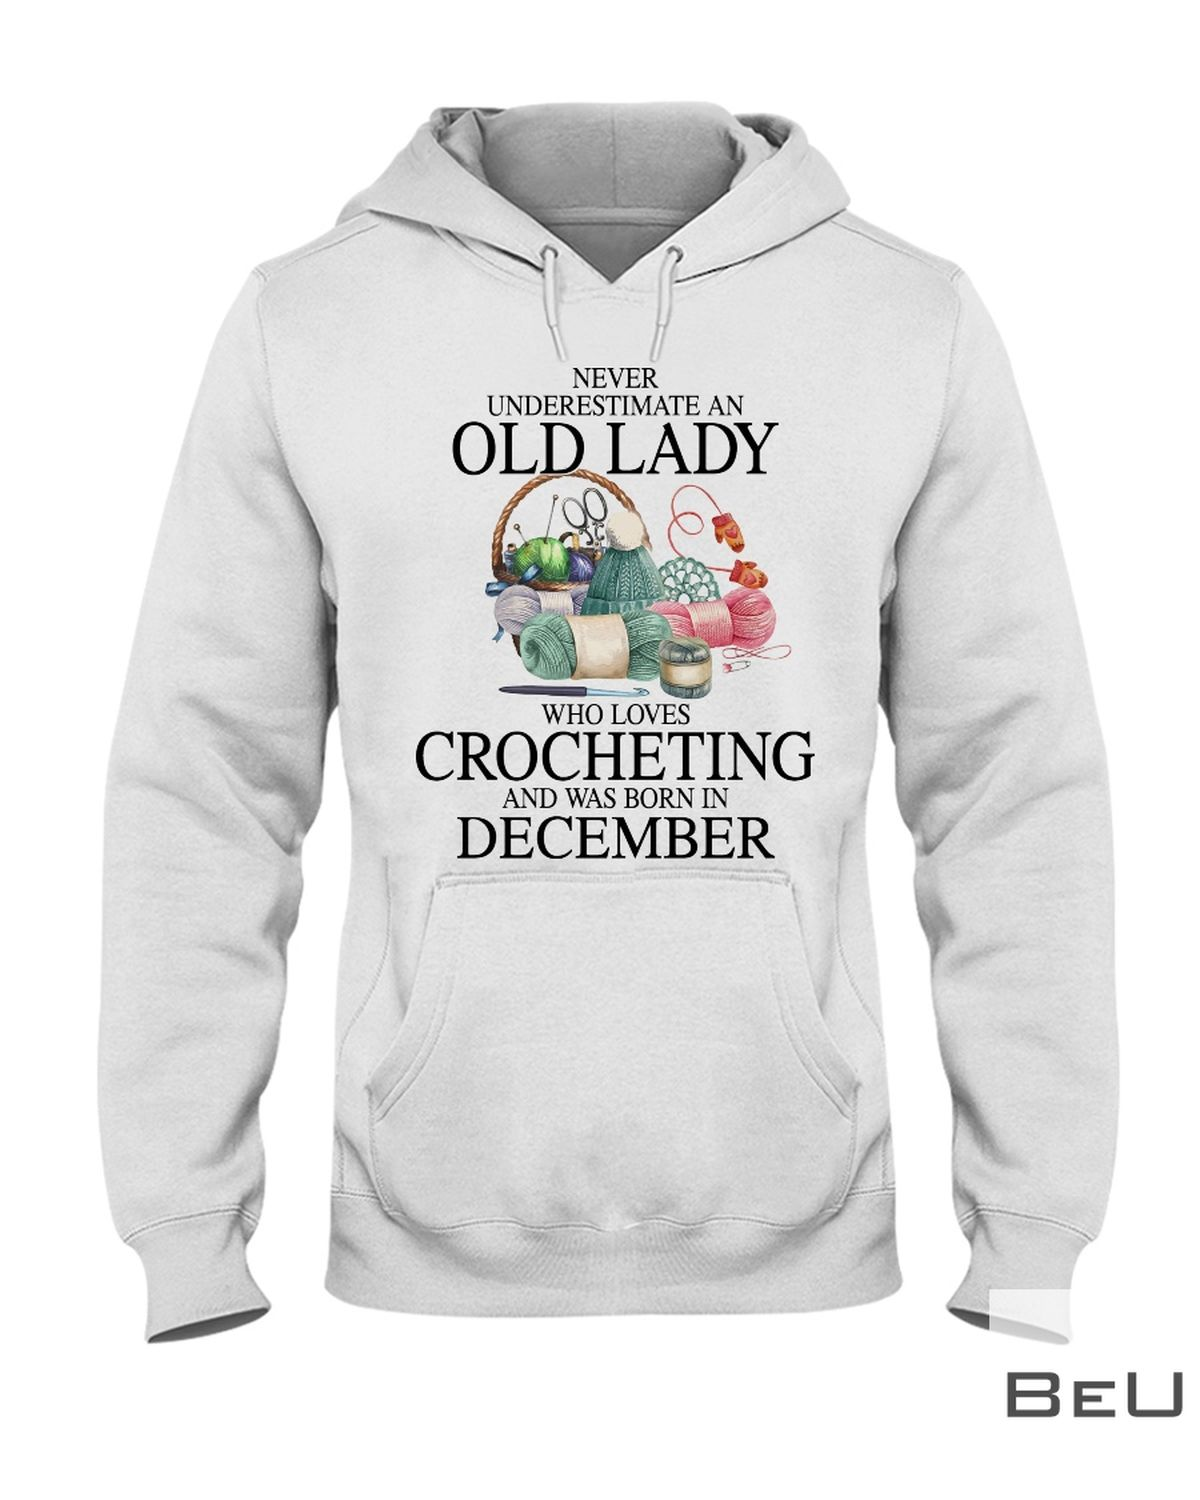 Never underestimate an old lady who loves Crocheting and was born in December shirtz